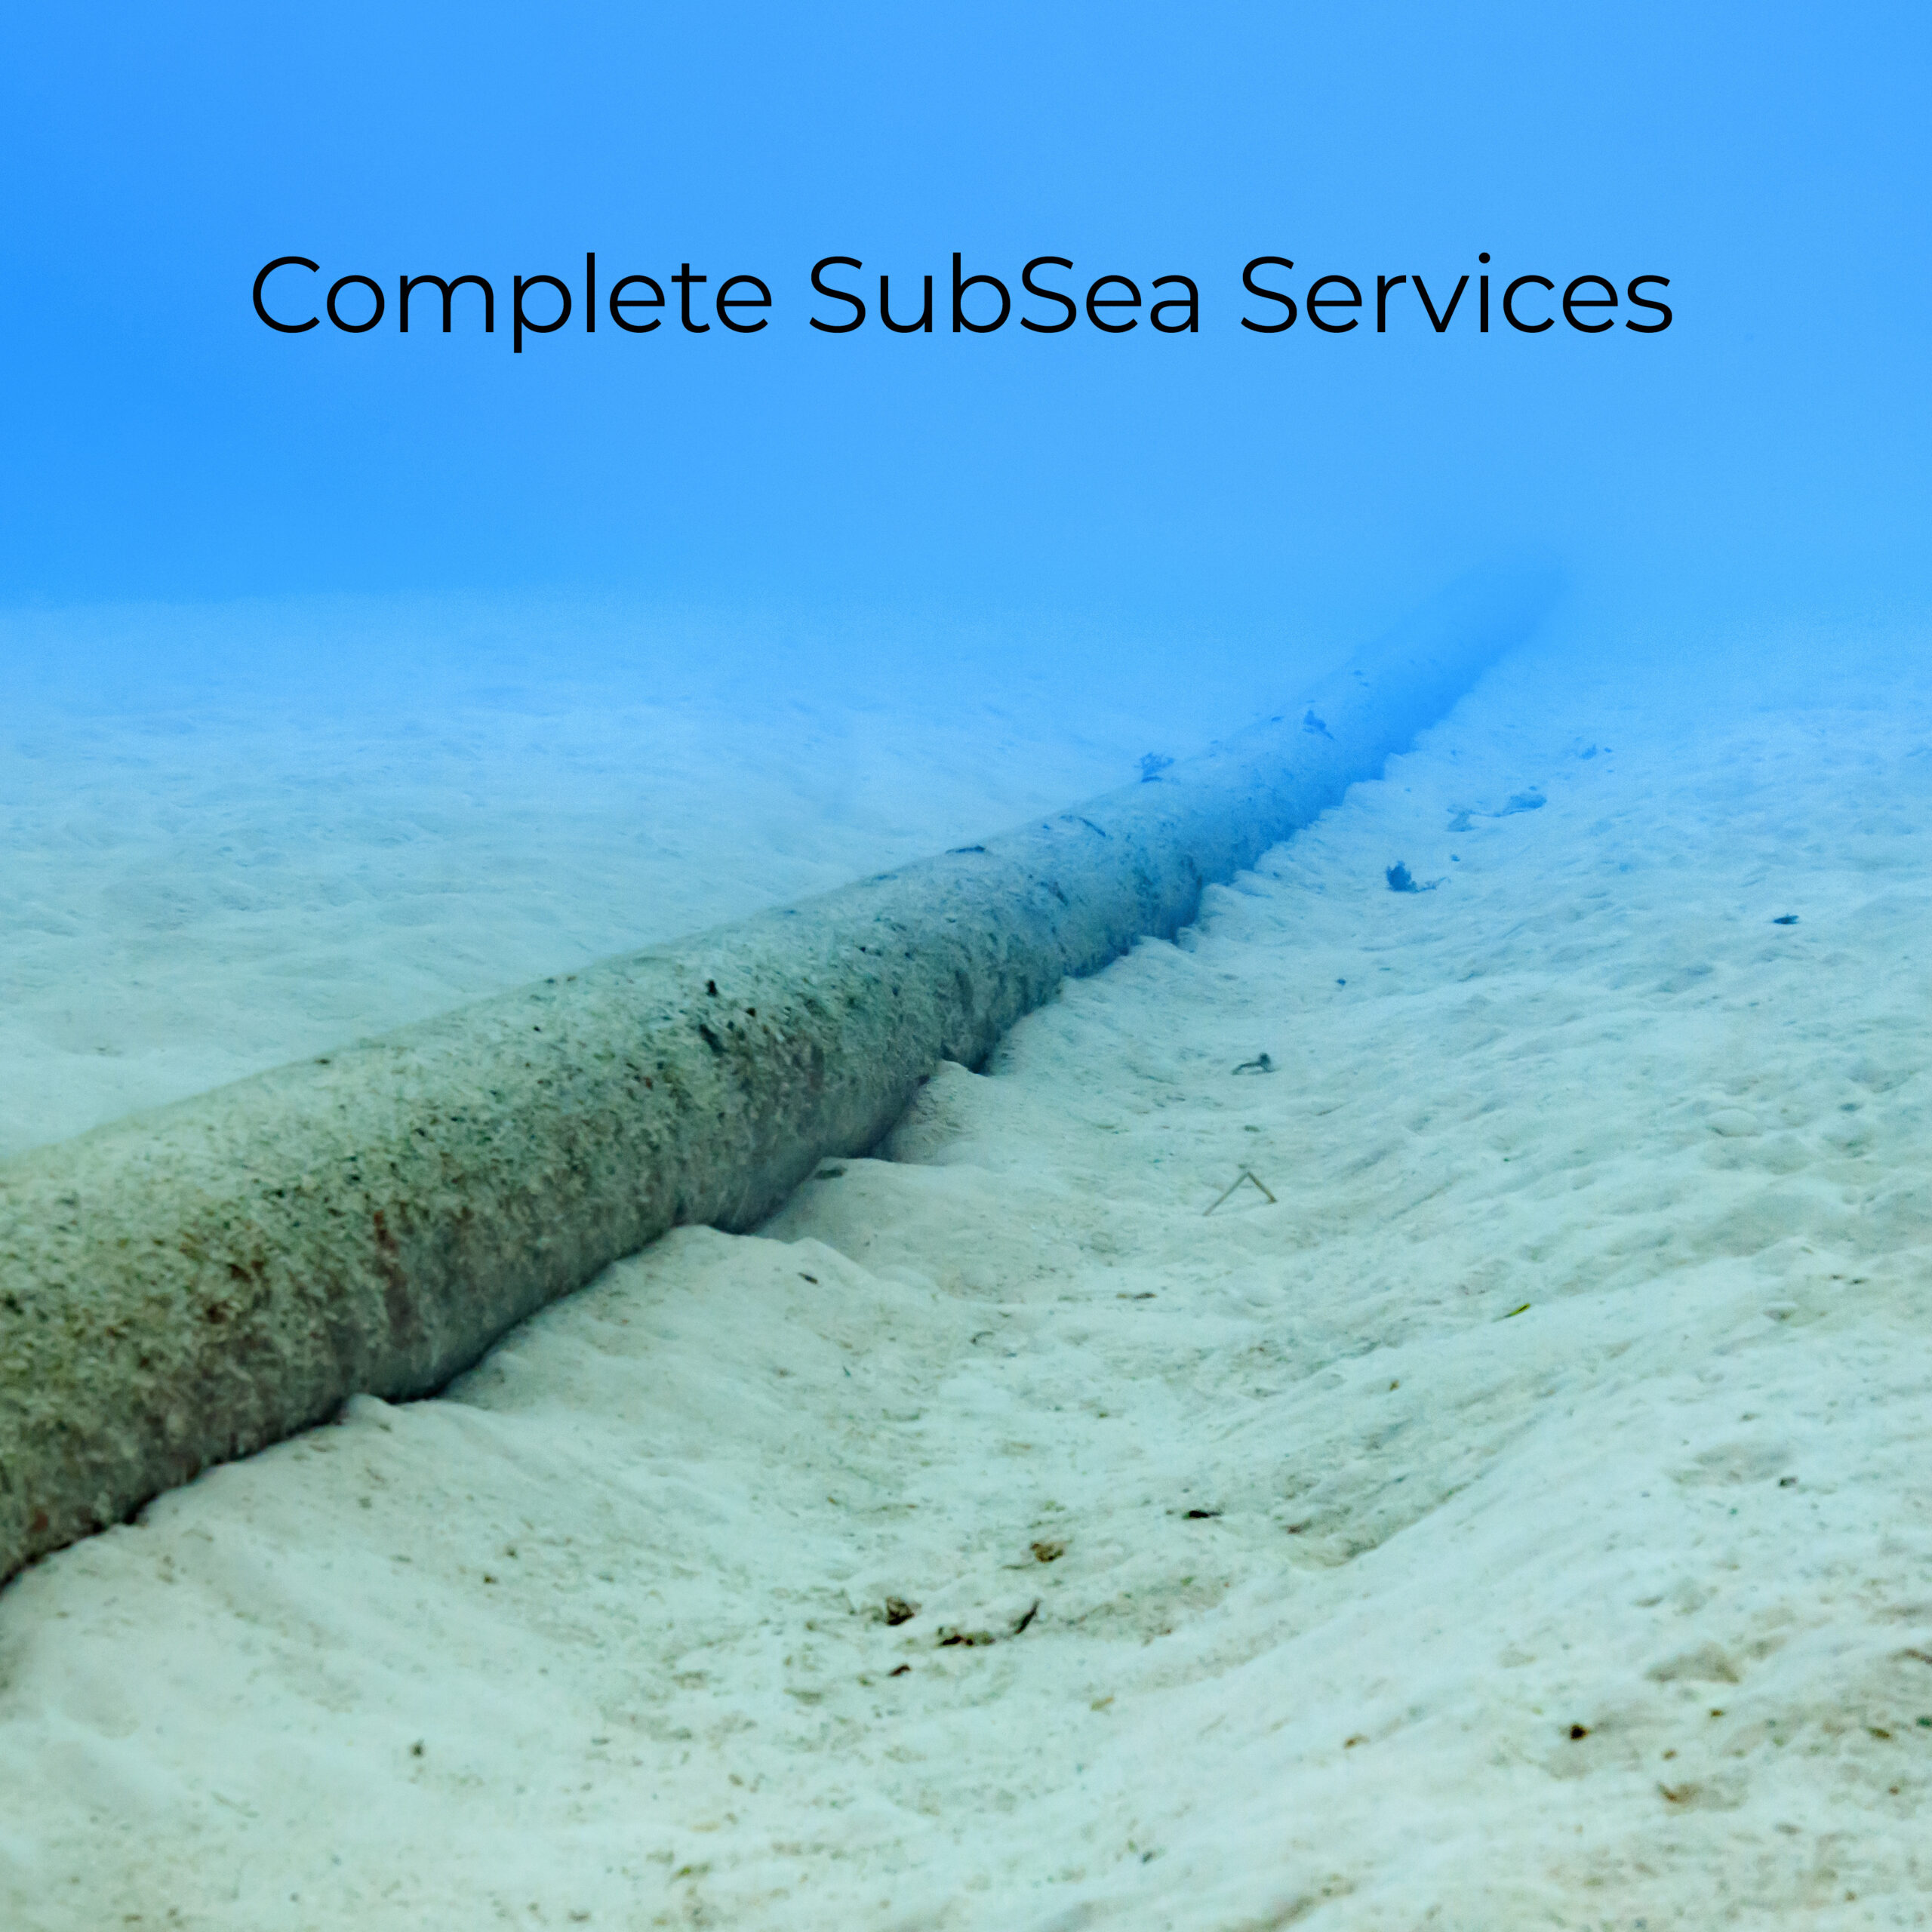 subsea services